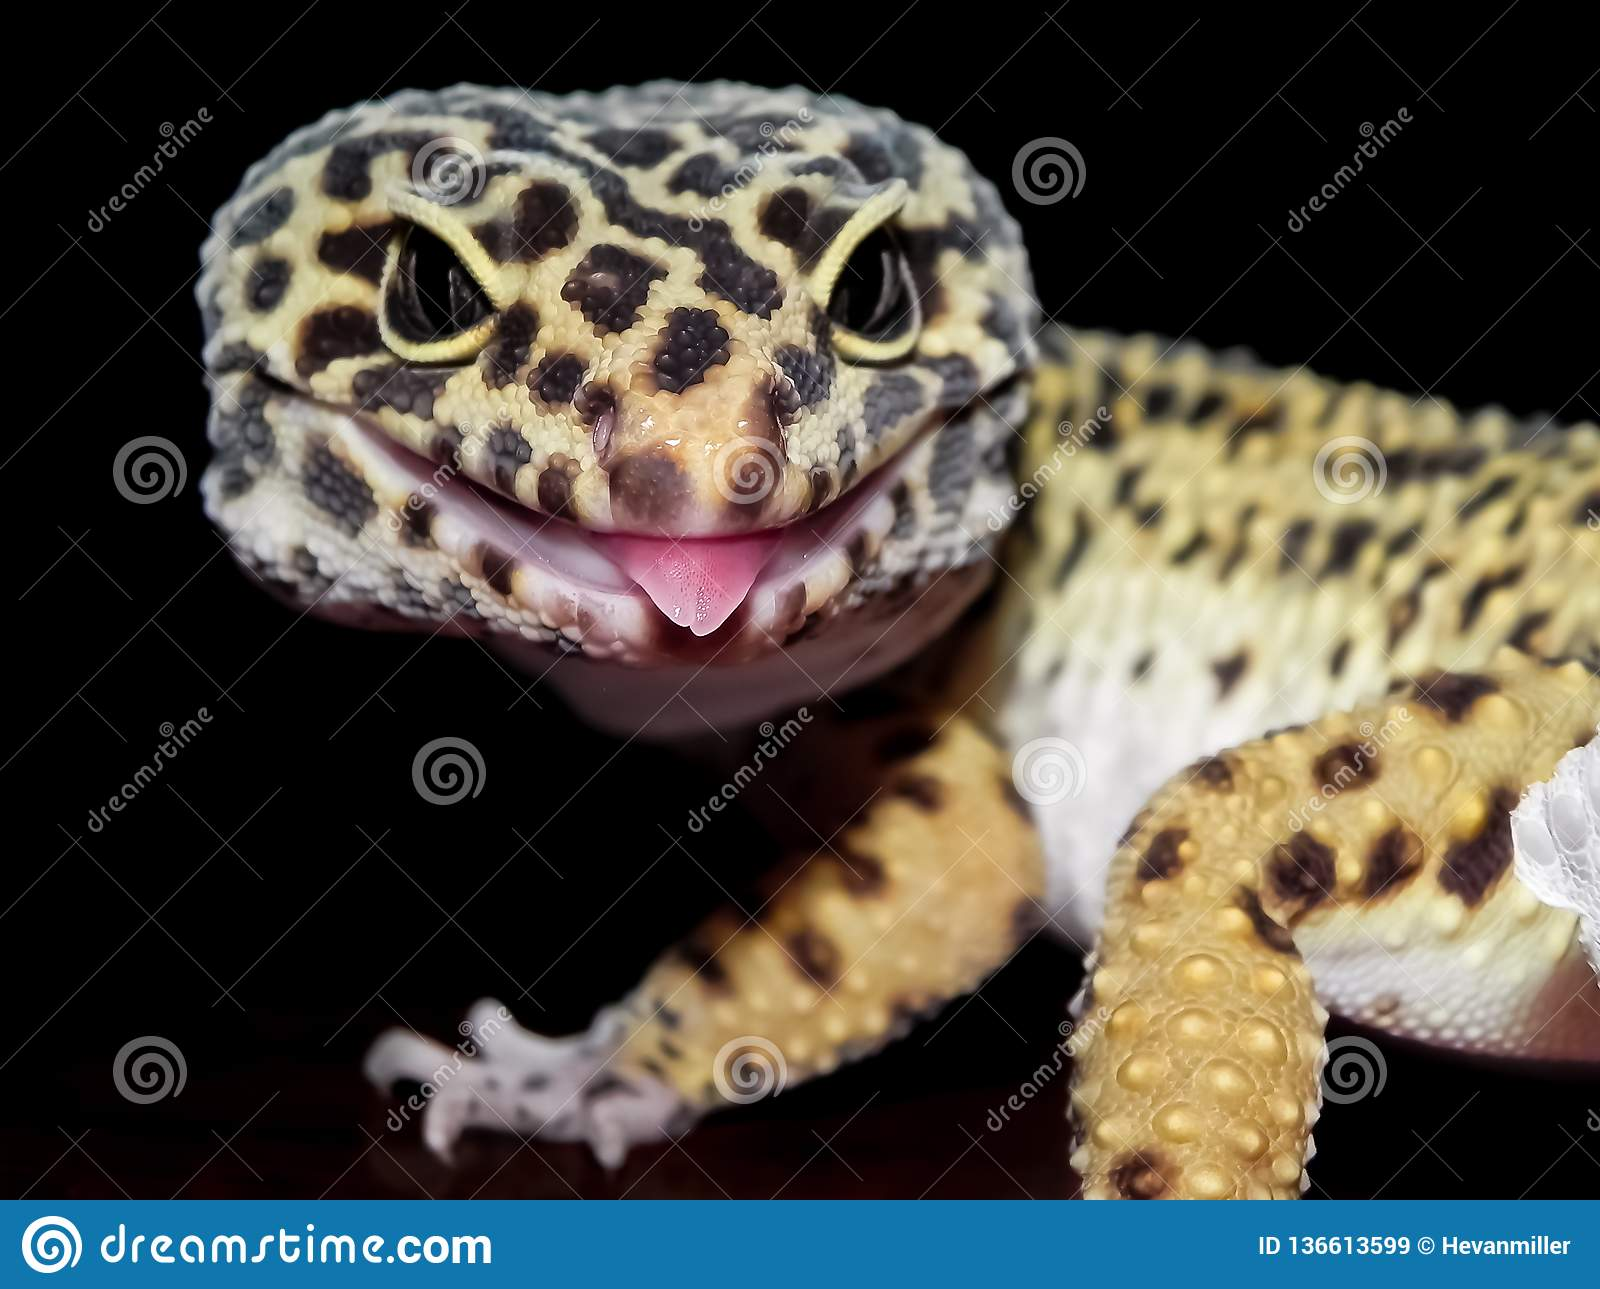 Leopard Gecko with Black and Yellow spots Close Up with Tongue Sticking Out